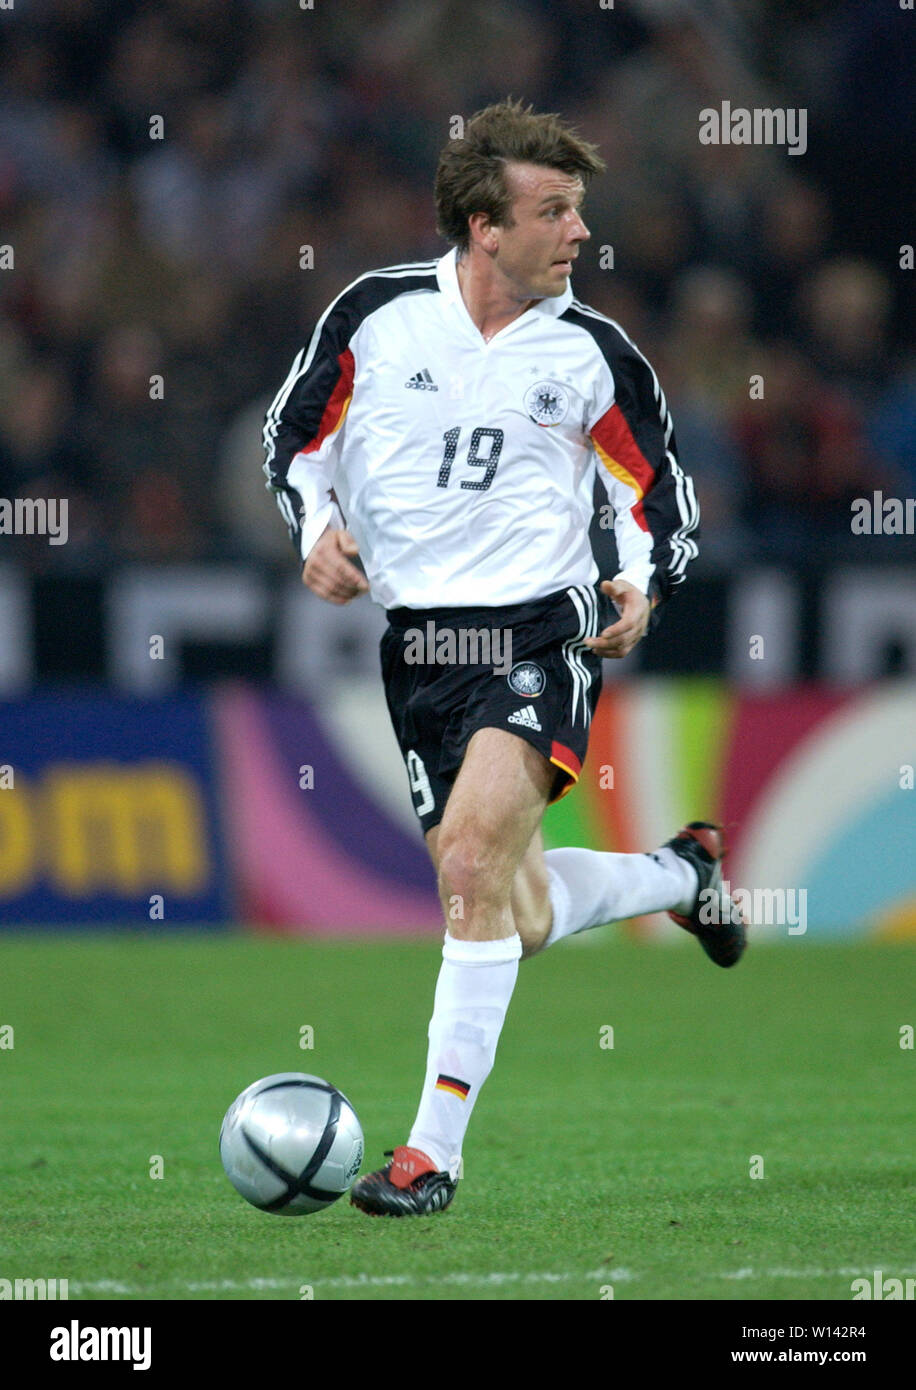 Rhein-Energie-Stadion Cologne Germany, 31.3.2004, Football: International friendly, Germany (white) vs. Belgium (red) 3:0 --- Bernd Schneider (GER) Stock Photo